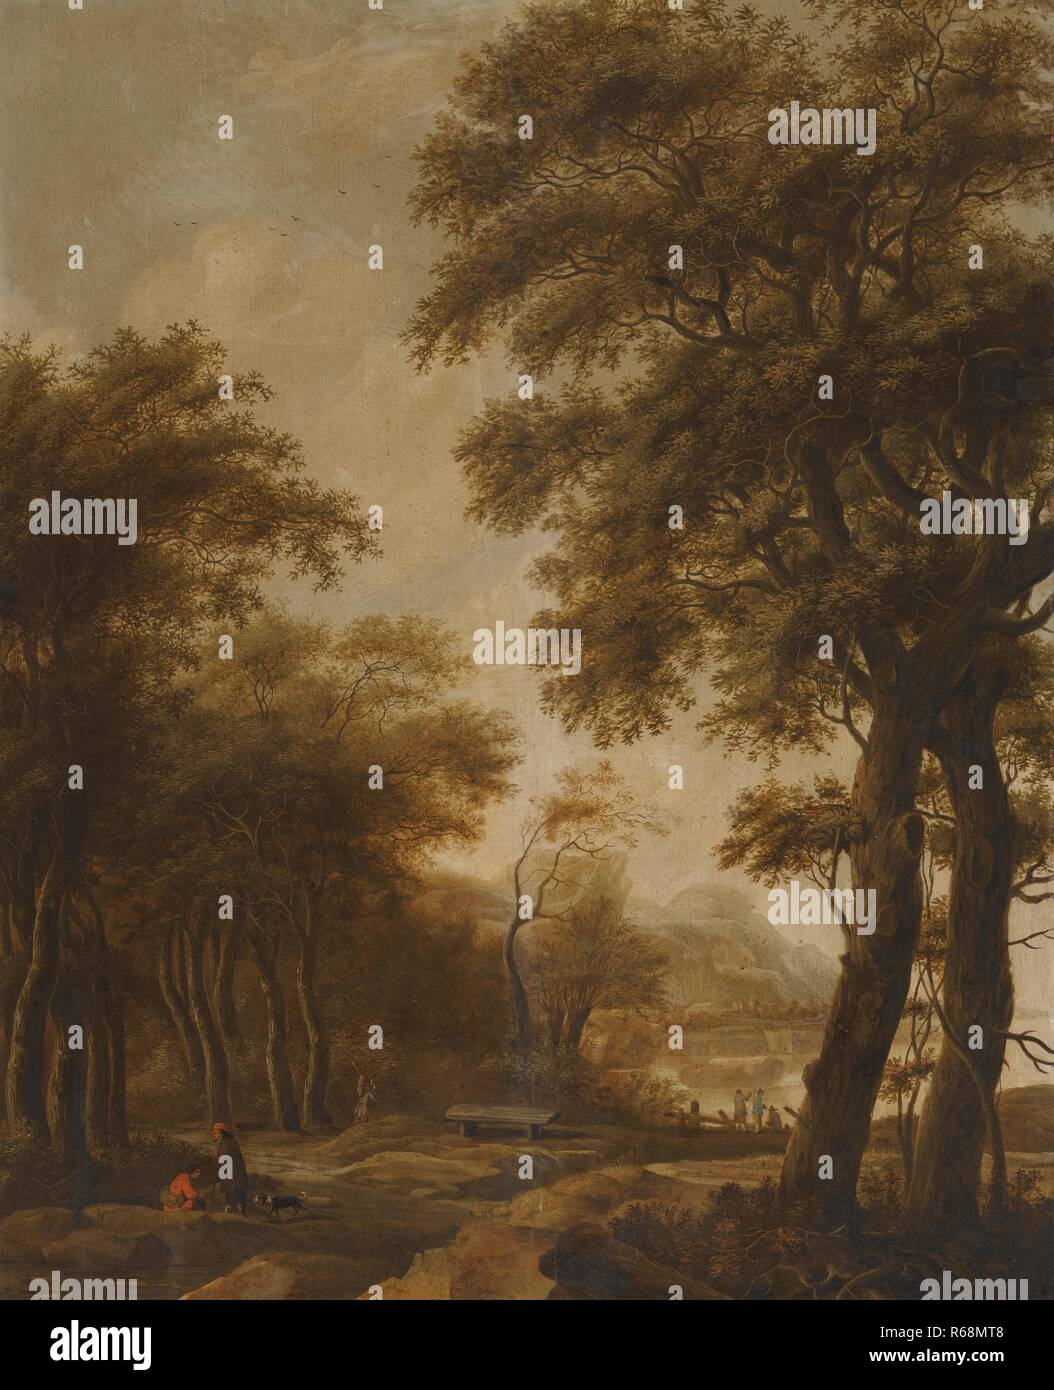 79d88b7e66b4 Anthonie Waterloo Figures In a Wooded River Landscape  Figures By Buildings  In a Classical Landscape.jpg - R68MT8